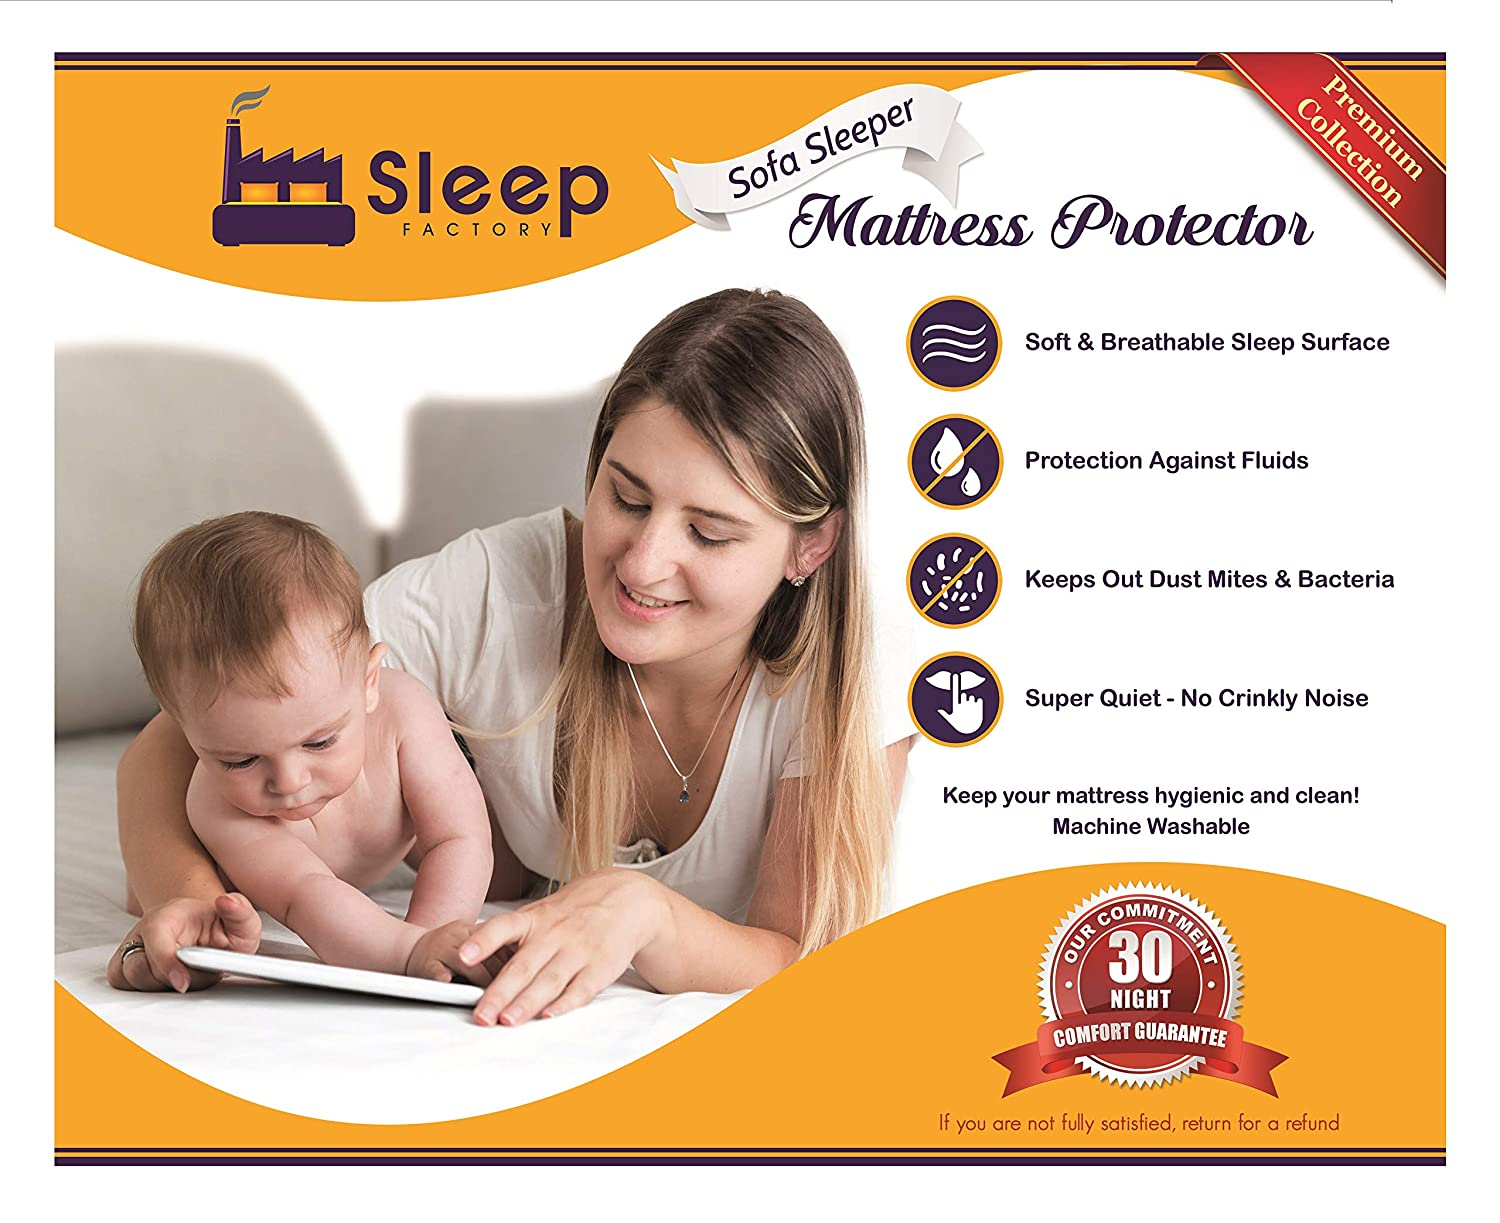 Sleep Factory - Mattress & Sofa Bed Sleeper Protector | Total Safety from Spillage & Dust Mite, Hypoallergenic, Waterproof, Premium 100% Jersey Cotton Top, Cot Size (30x80), 6 Depth, White 6 Depth The Sleep Factory